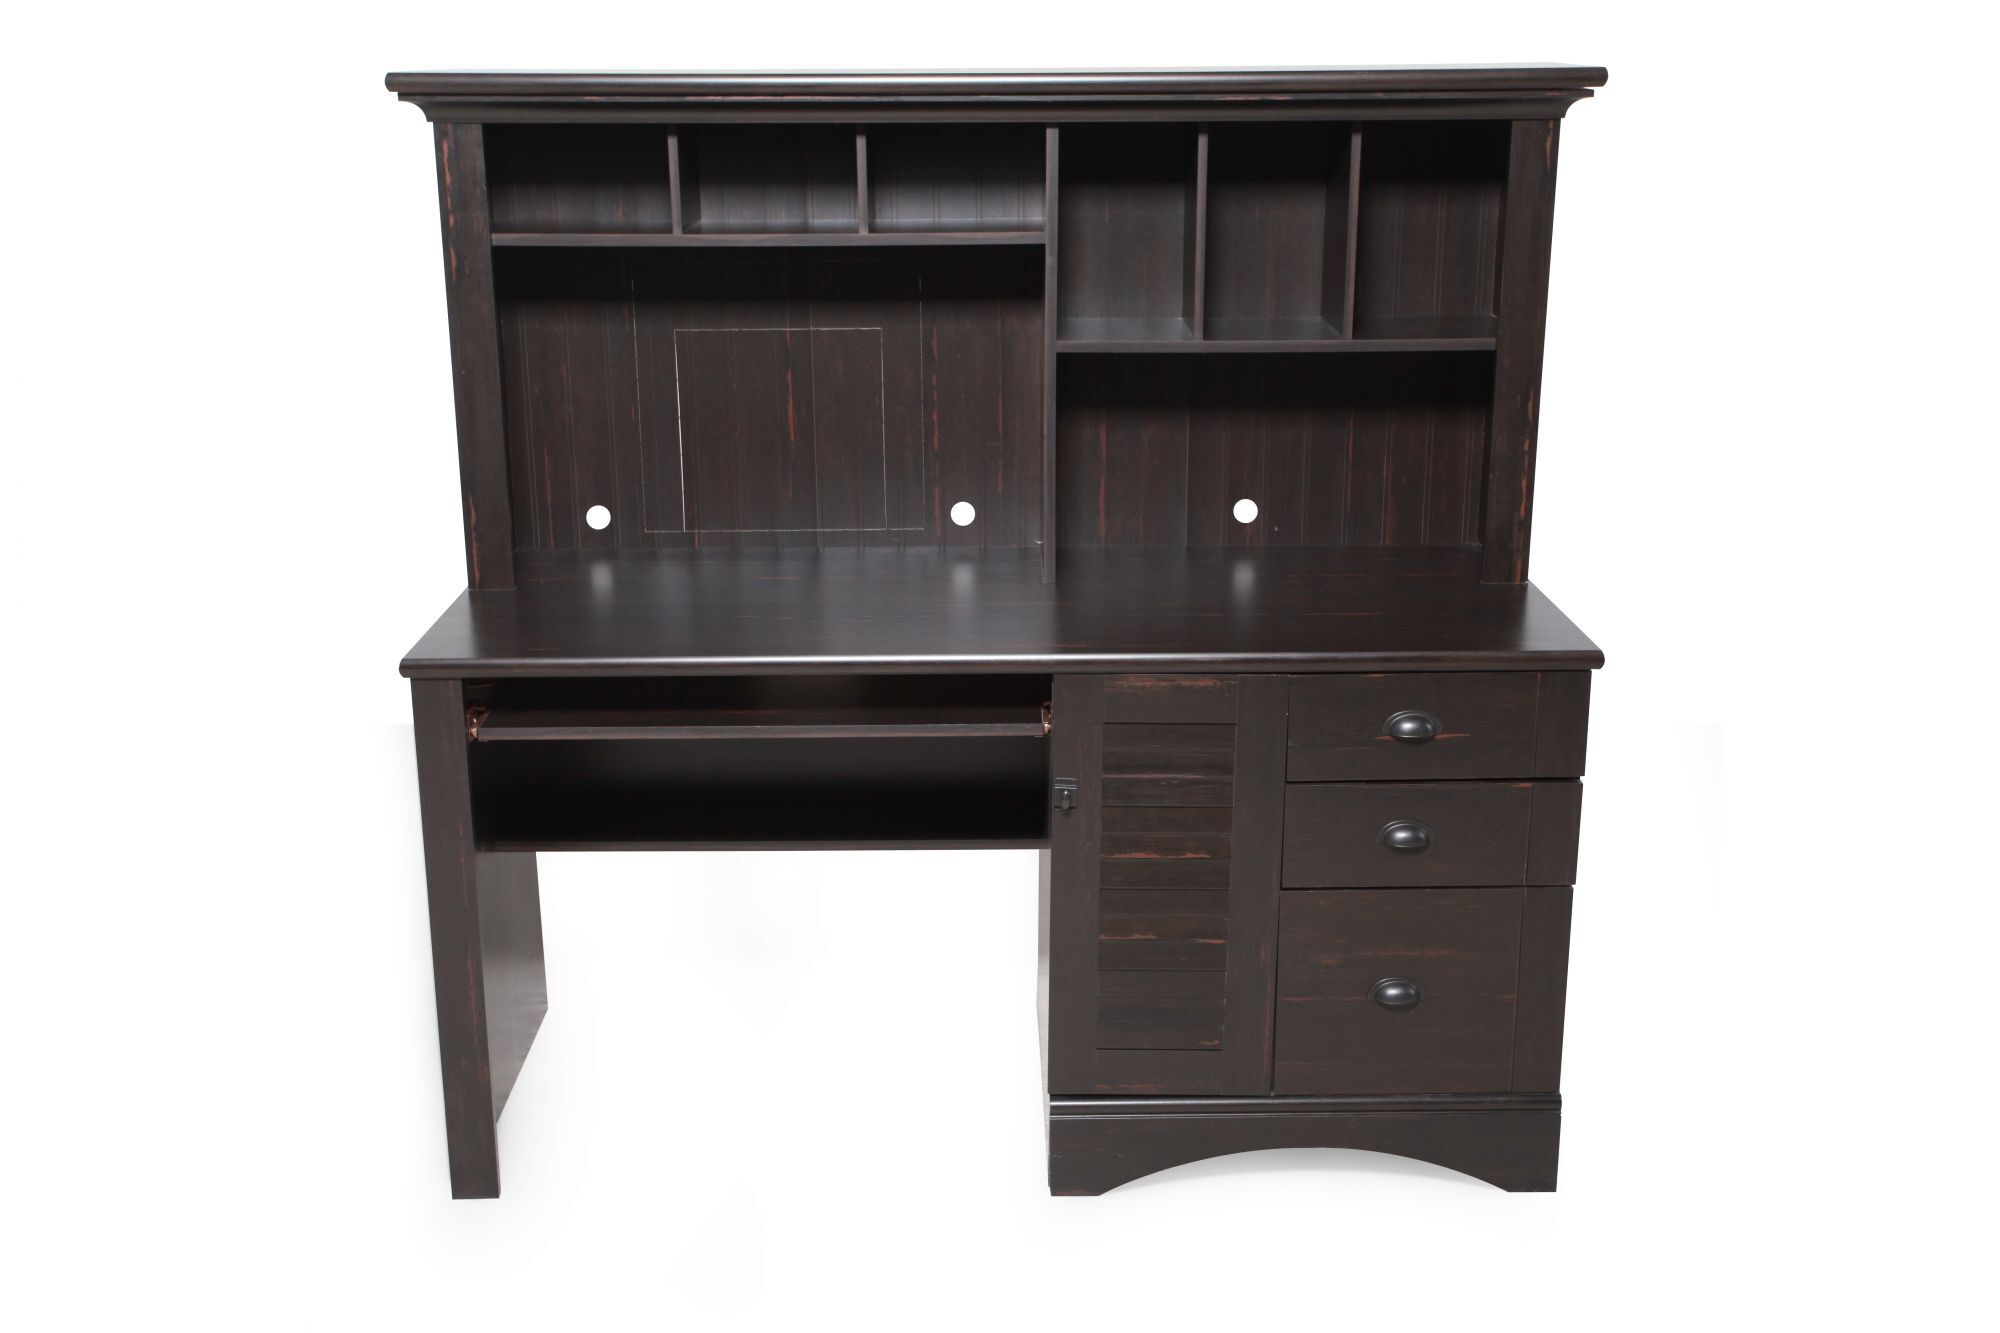 Charmant Images 62u0026quot; Casual Computer Desk With Hutch In Antiqued Black 62u0026quot;  Casual Computer Desk With Hutch In Antiqued Black